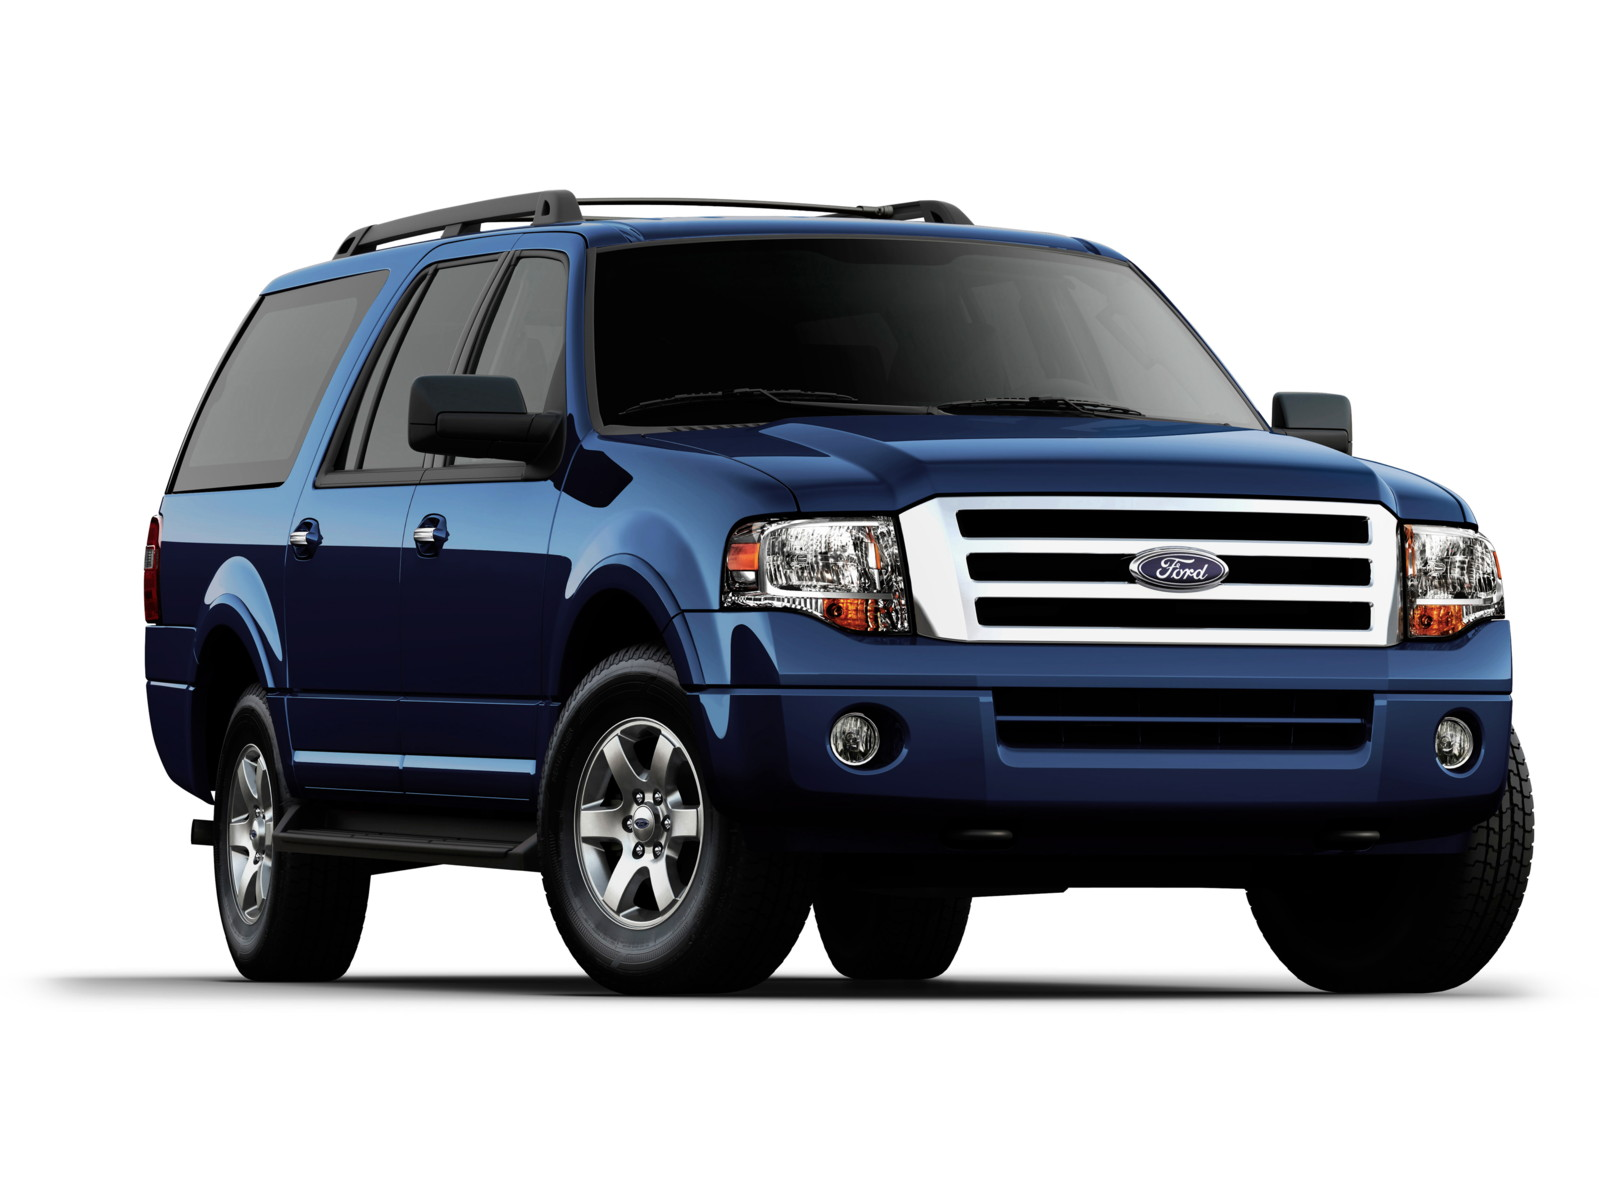 2010 Ford Expedition #15